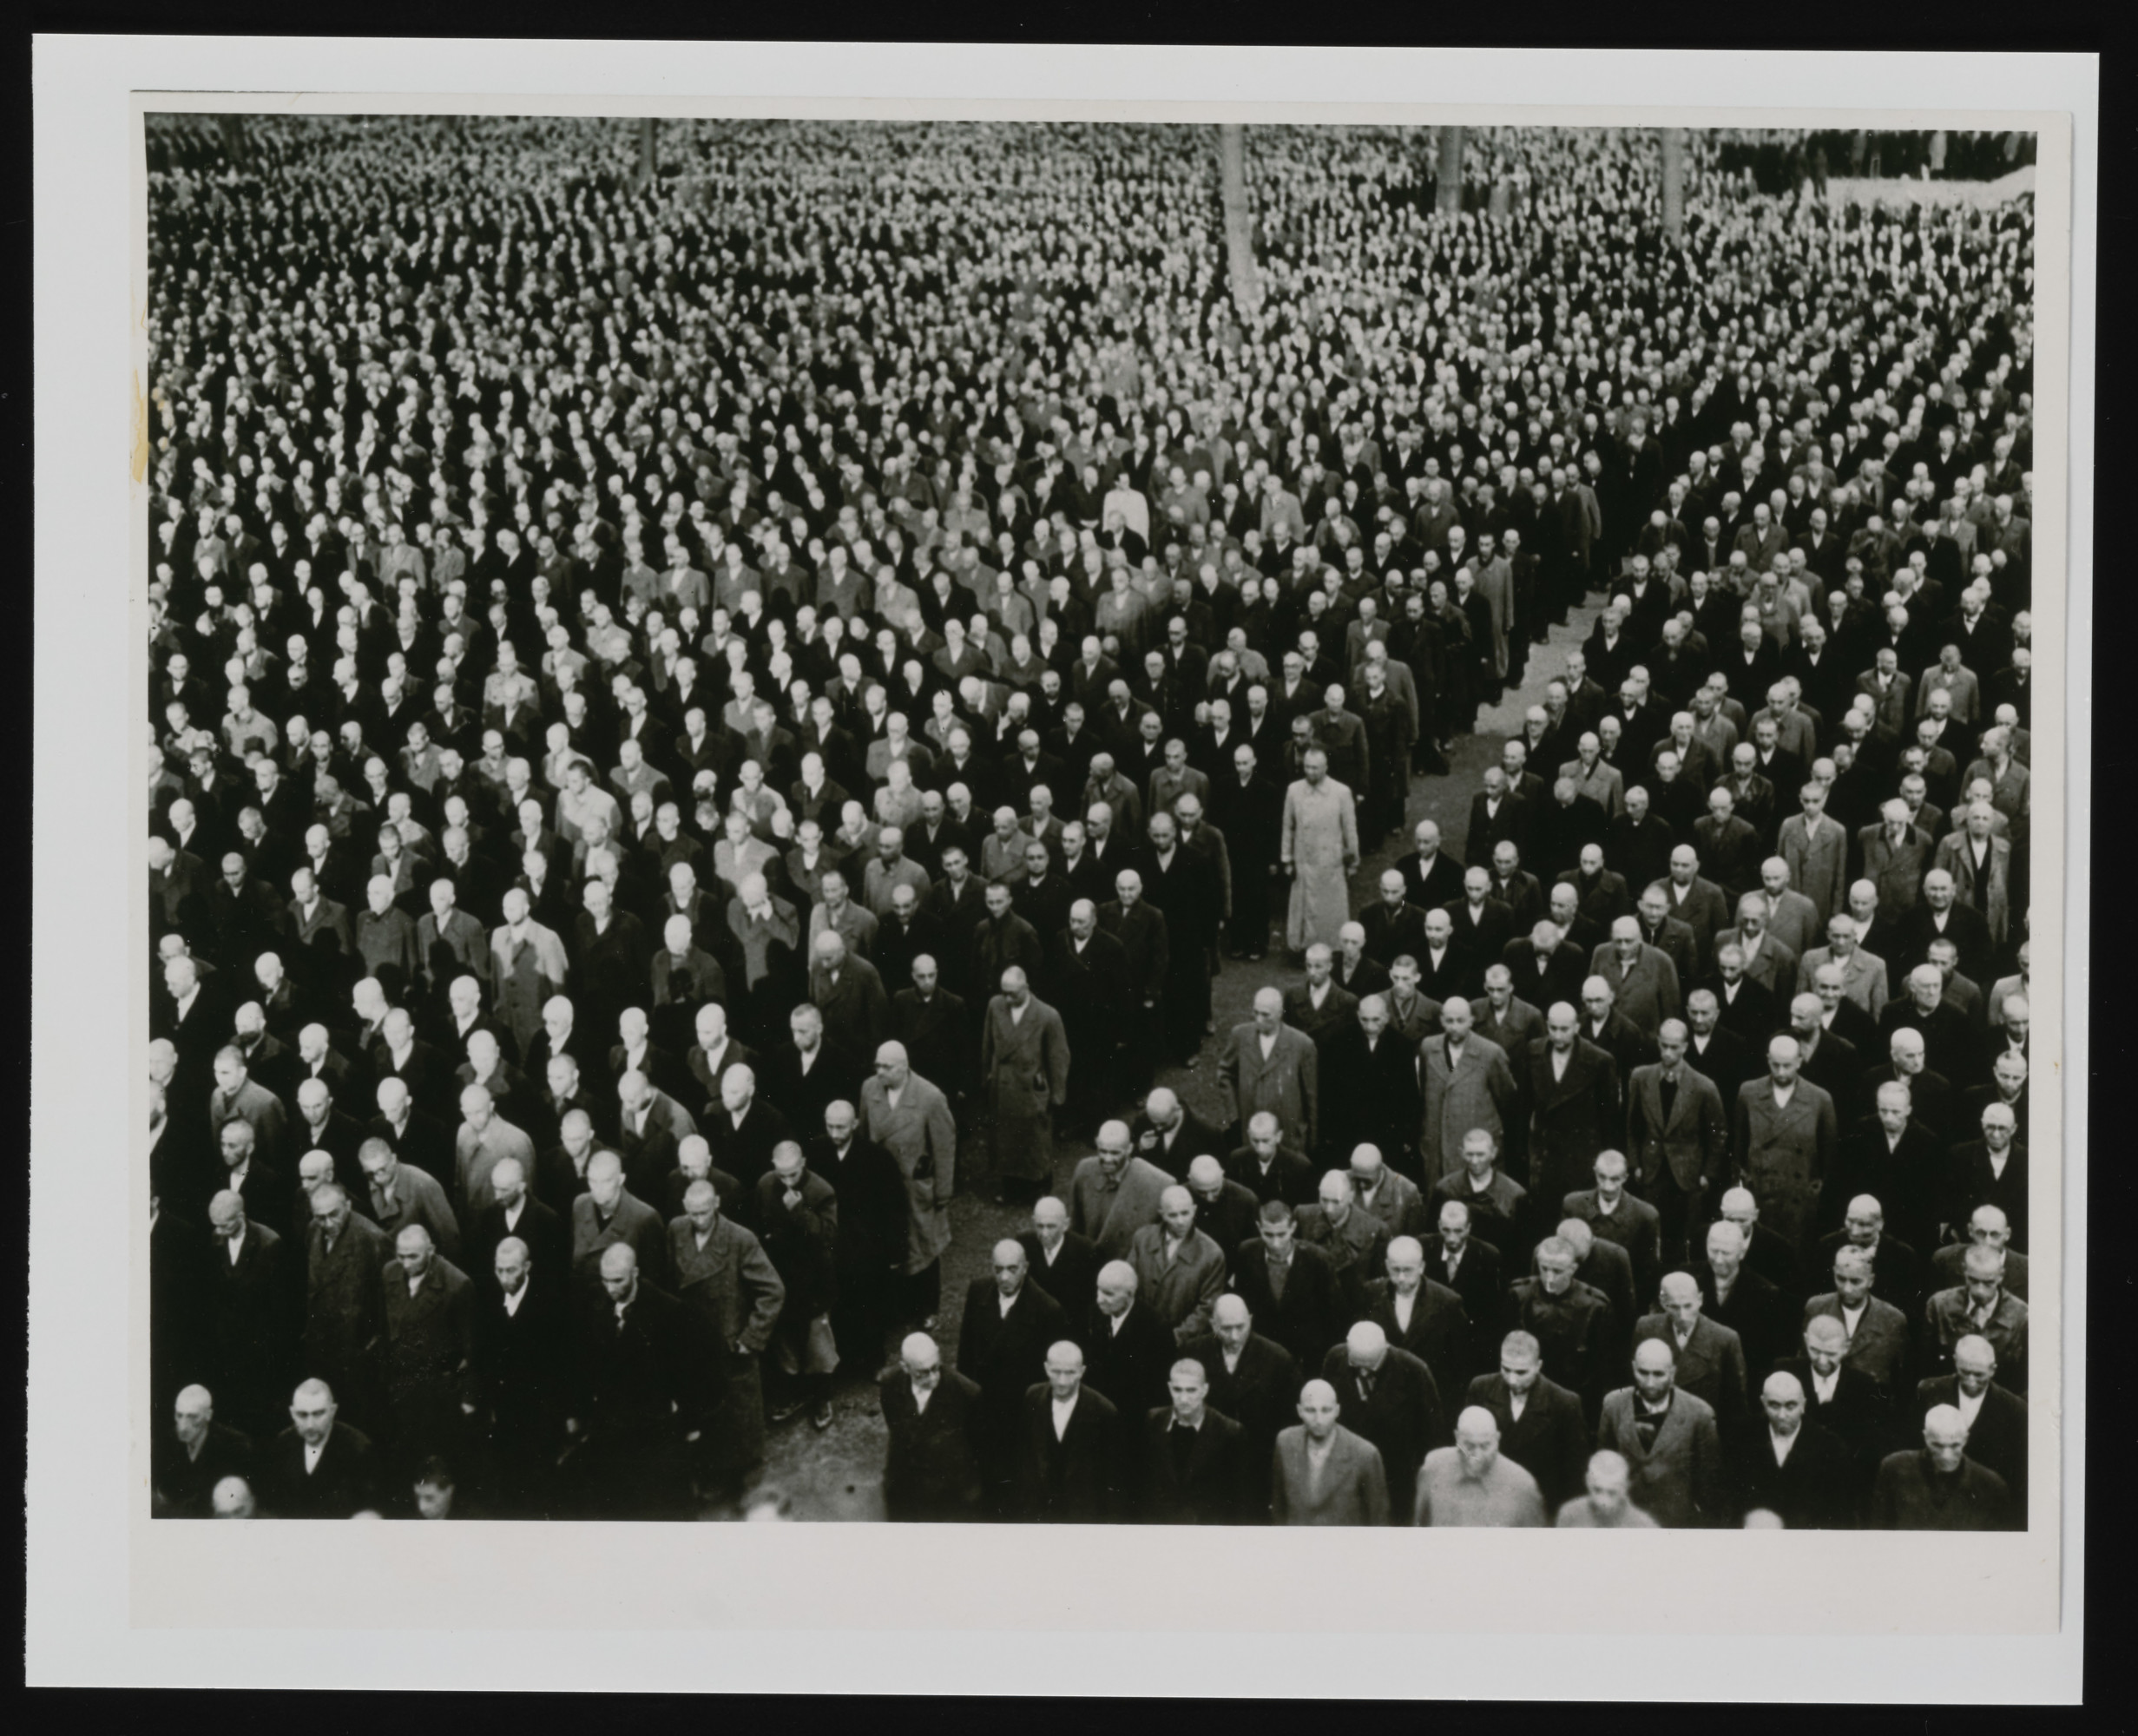 Newly arrived prisoners, with shaven-heads, stand at attention in their civilian clothes during a roll call in the Buchenwald concentration camp.    Some still have their valises and other luggage with them.  These prisoners were among the more than 10,000 German-Jews who were arrested during the Kristallnacht pogrom (November 9-10, 1938) and sent to Buchenwald.  Another 20,000 German-Jews arrested at the same time were imprisoned in Dachau and Sachsenhausen.